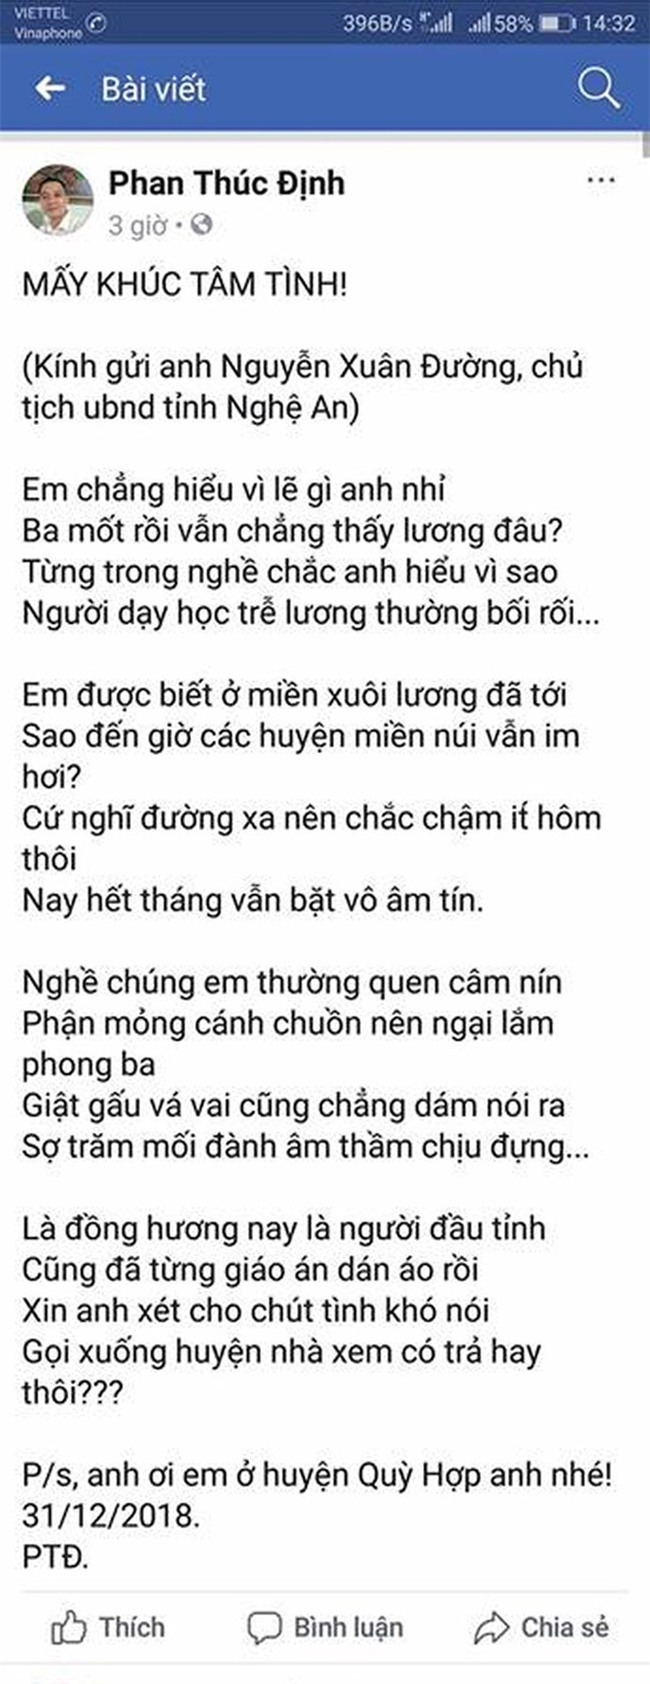 Thay giao lam tho cham luong, chu tich tinh phan hoi hinh anh 2